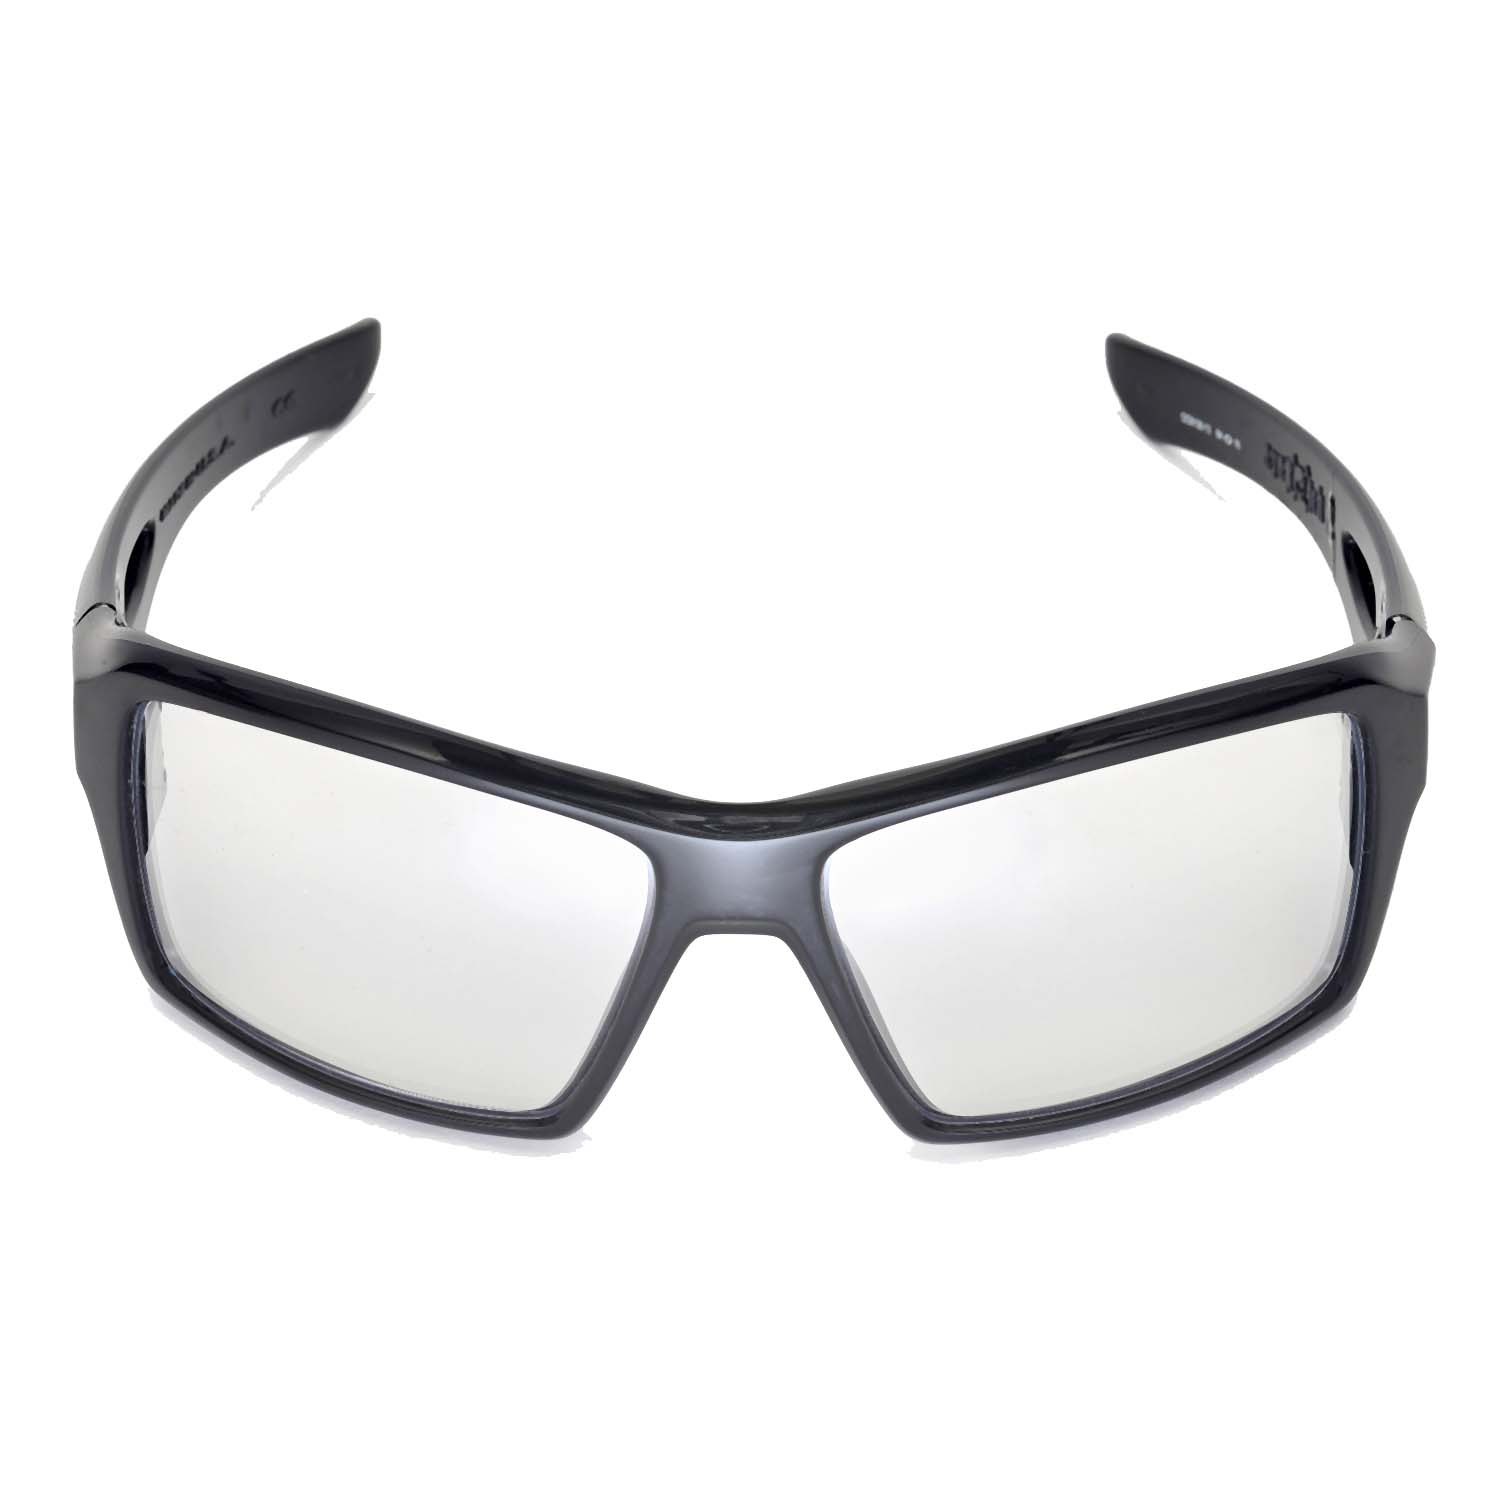 e3f2f3f1a88 Details about New Walleva Clear Replacement Lenses For Oakley Eyepatch 2  Sunglasses